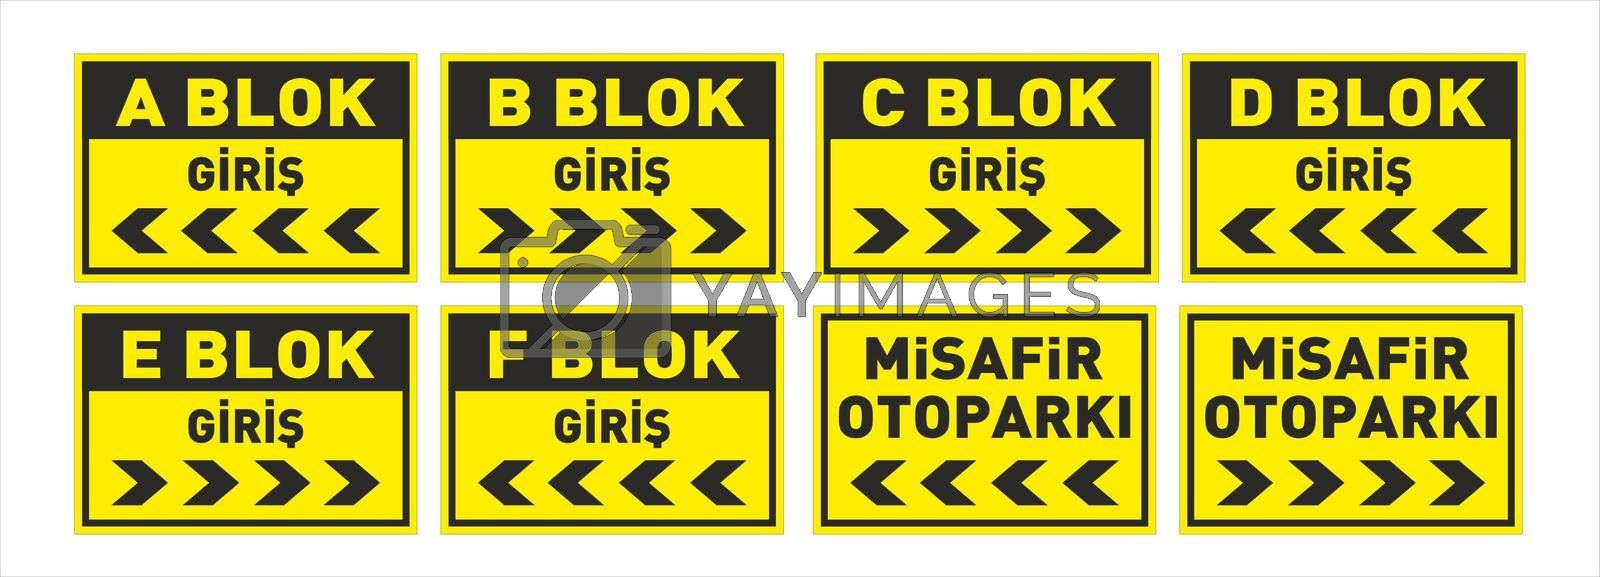 Turkish signage models, hazard sign, warning signboard, occupational safety and health signs, prohibited sign, emergency sign. for sticker, posters, and other material printing. easy to modify.  Vector interior signage concept direction pole wall mount.